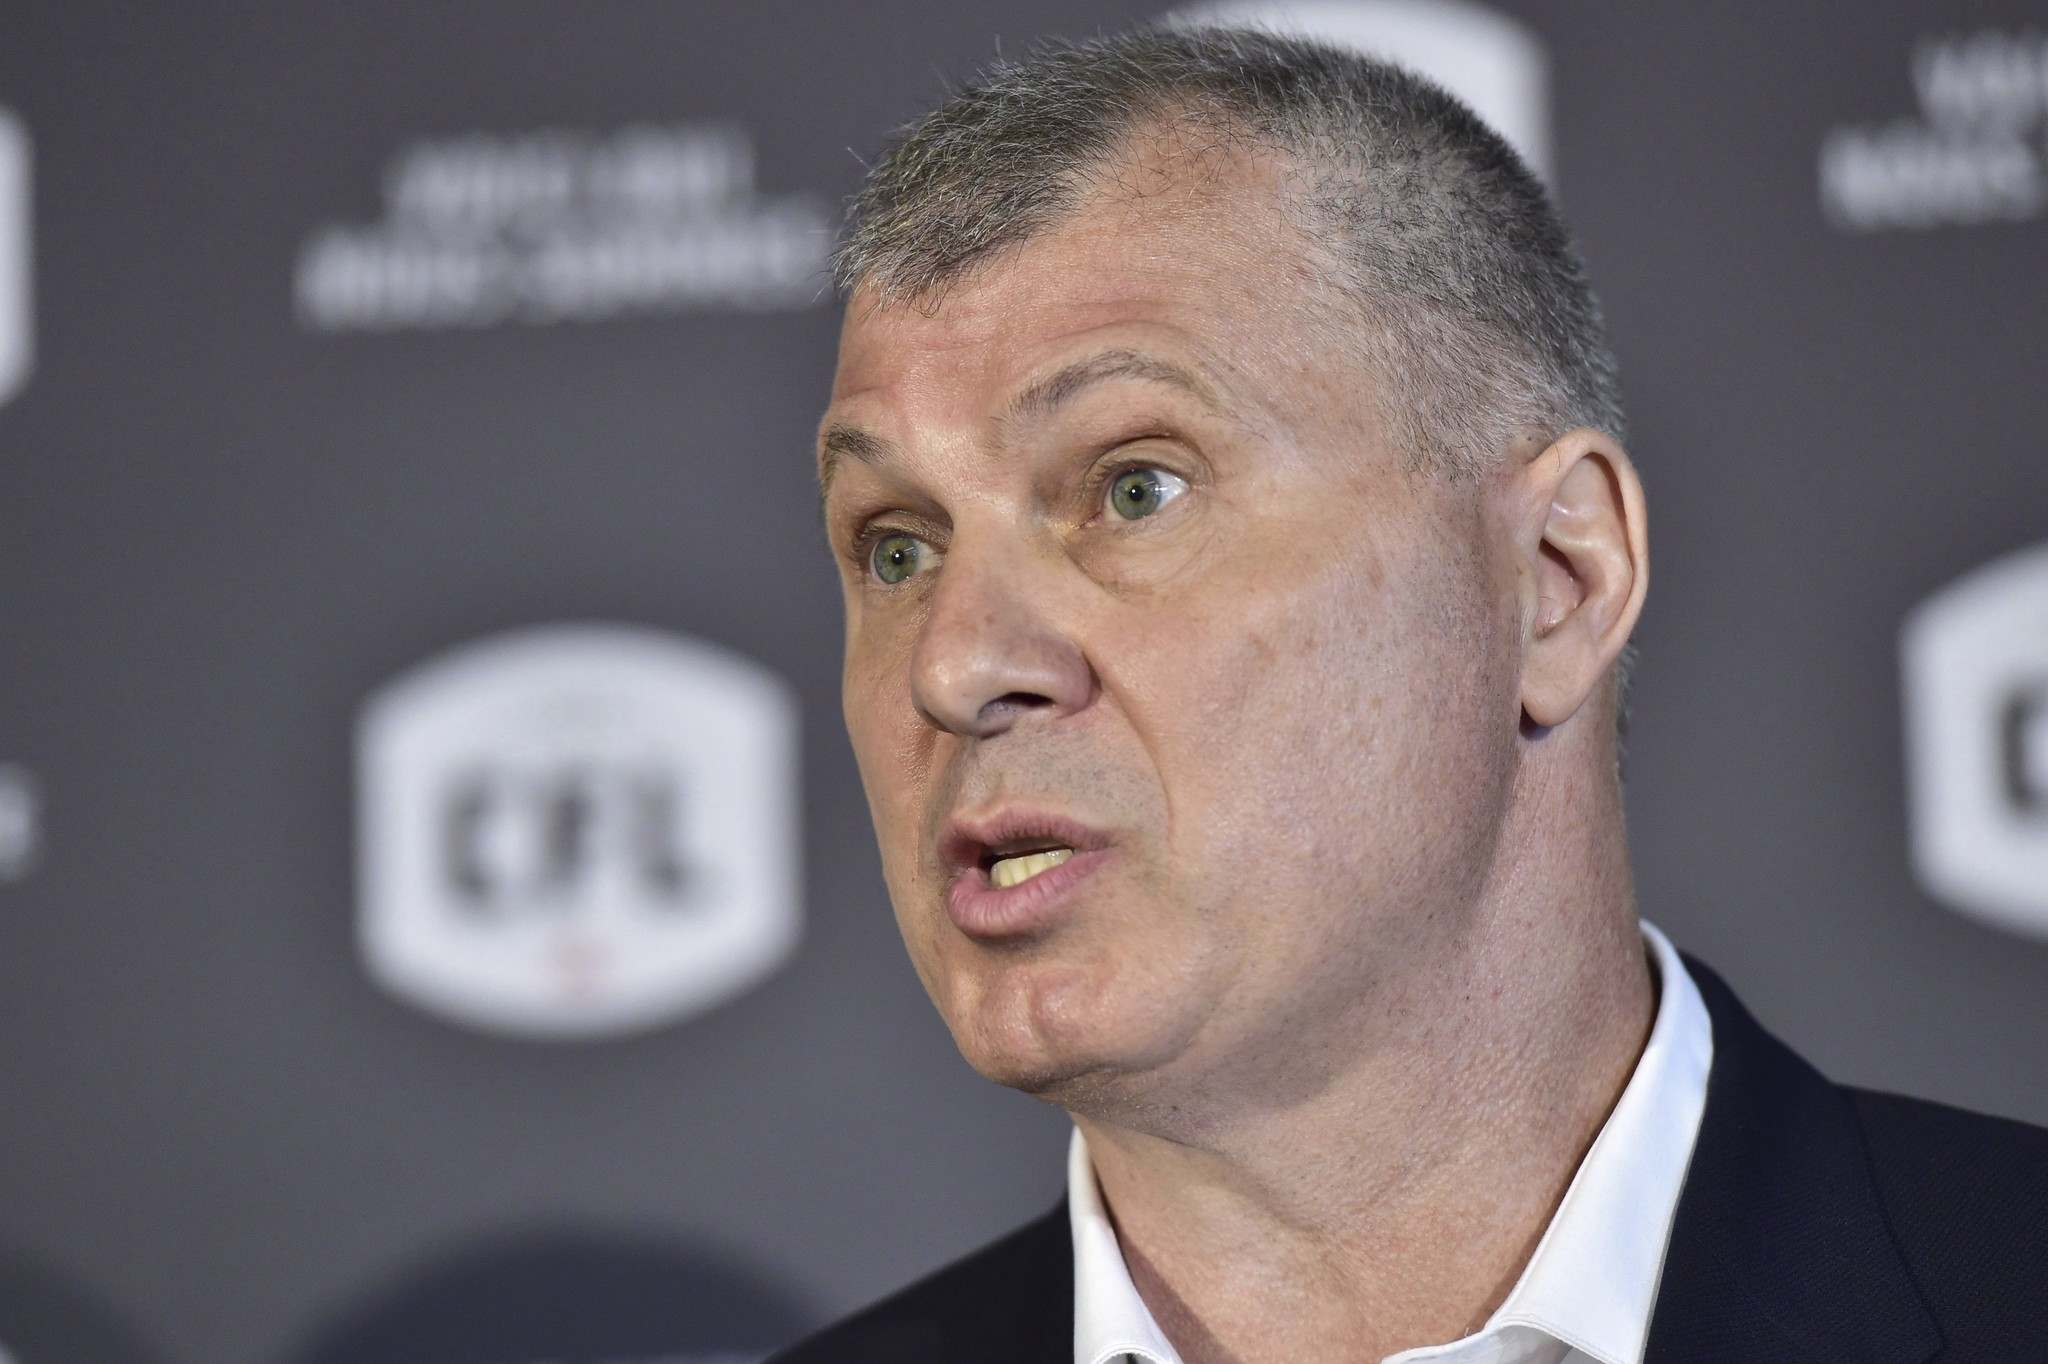 CFL Commissioner Randy Ambrosie has suggested the survival of the league could be in jeopardy if games can't be played this year and the federal government doesn't provide a financial bailout of up to $150 million. (Frank Gunn / The Canadian Press files)